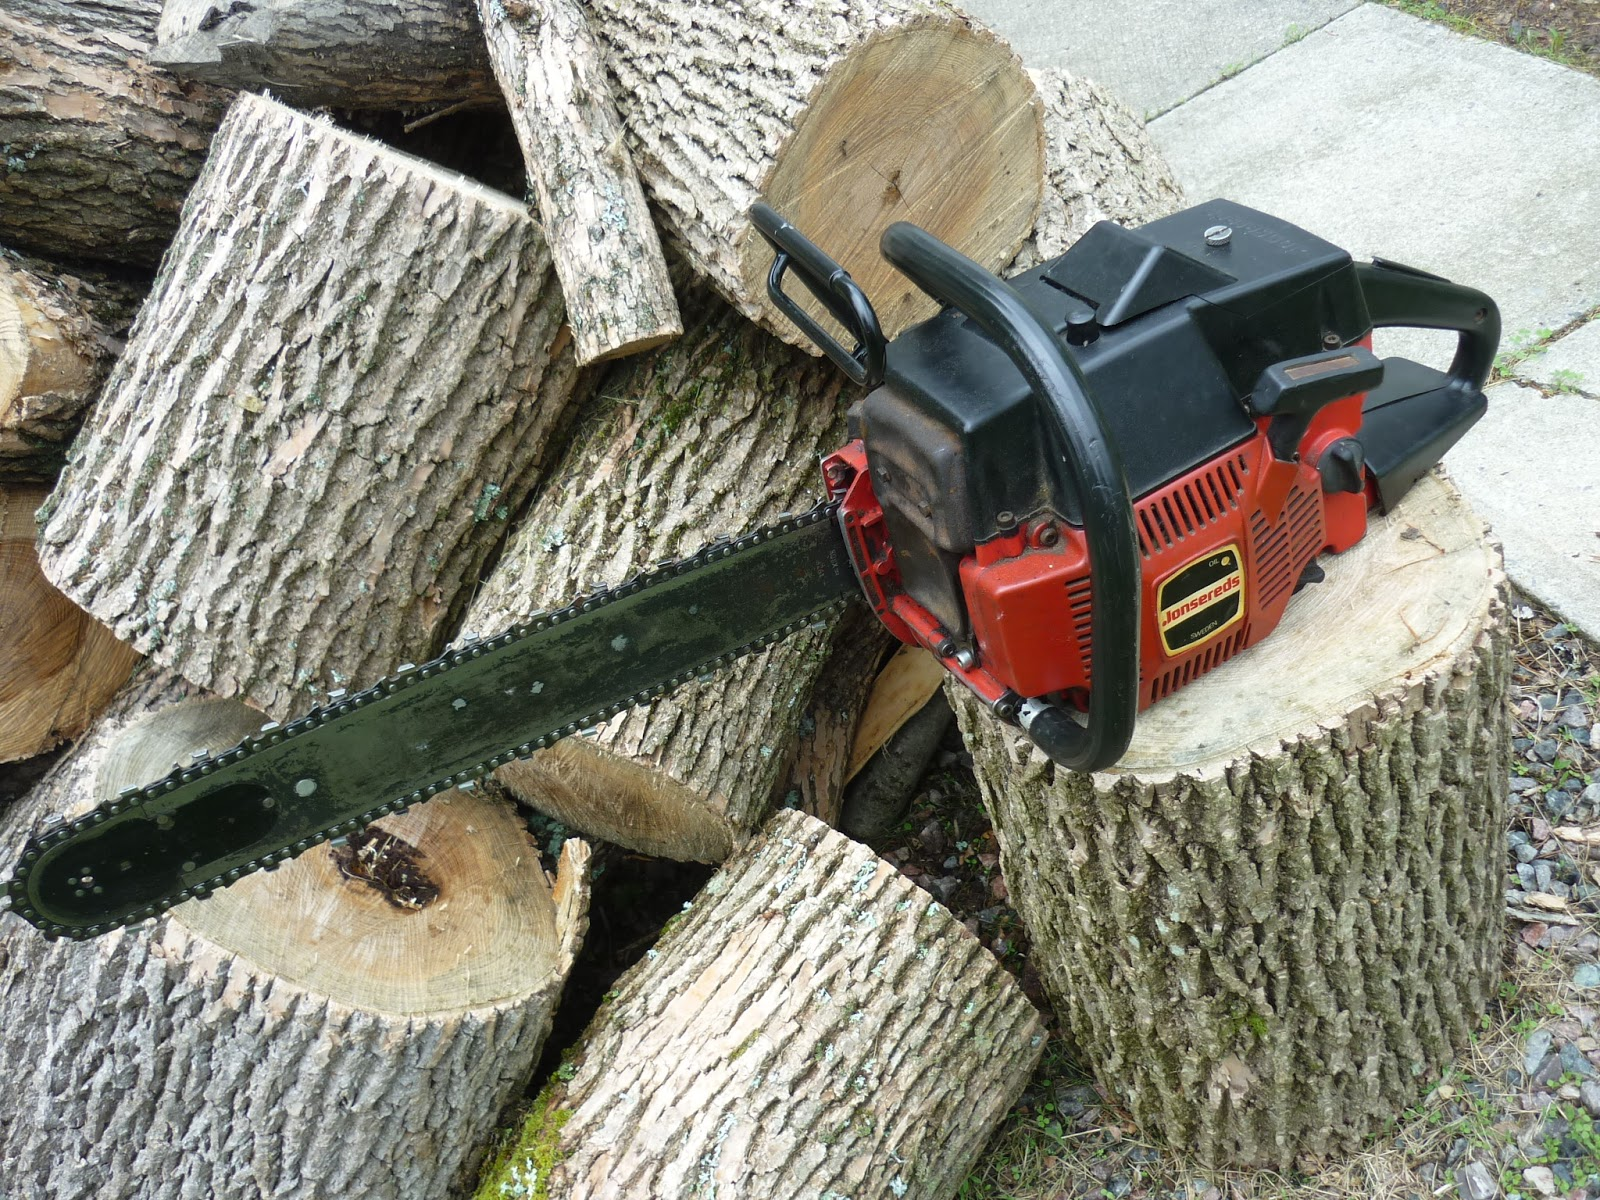 VINTAGE CHAINSAW COLLECTION: JONSERED 910 E